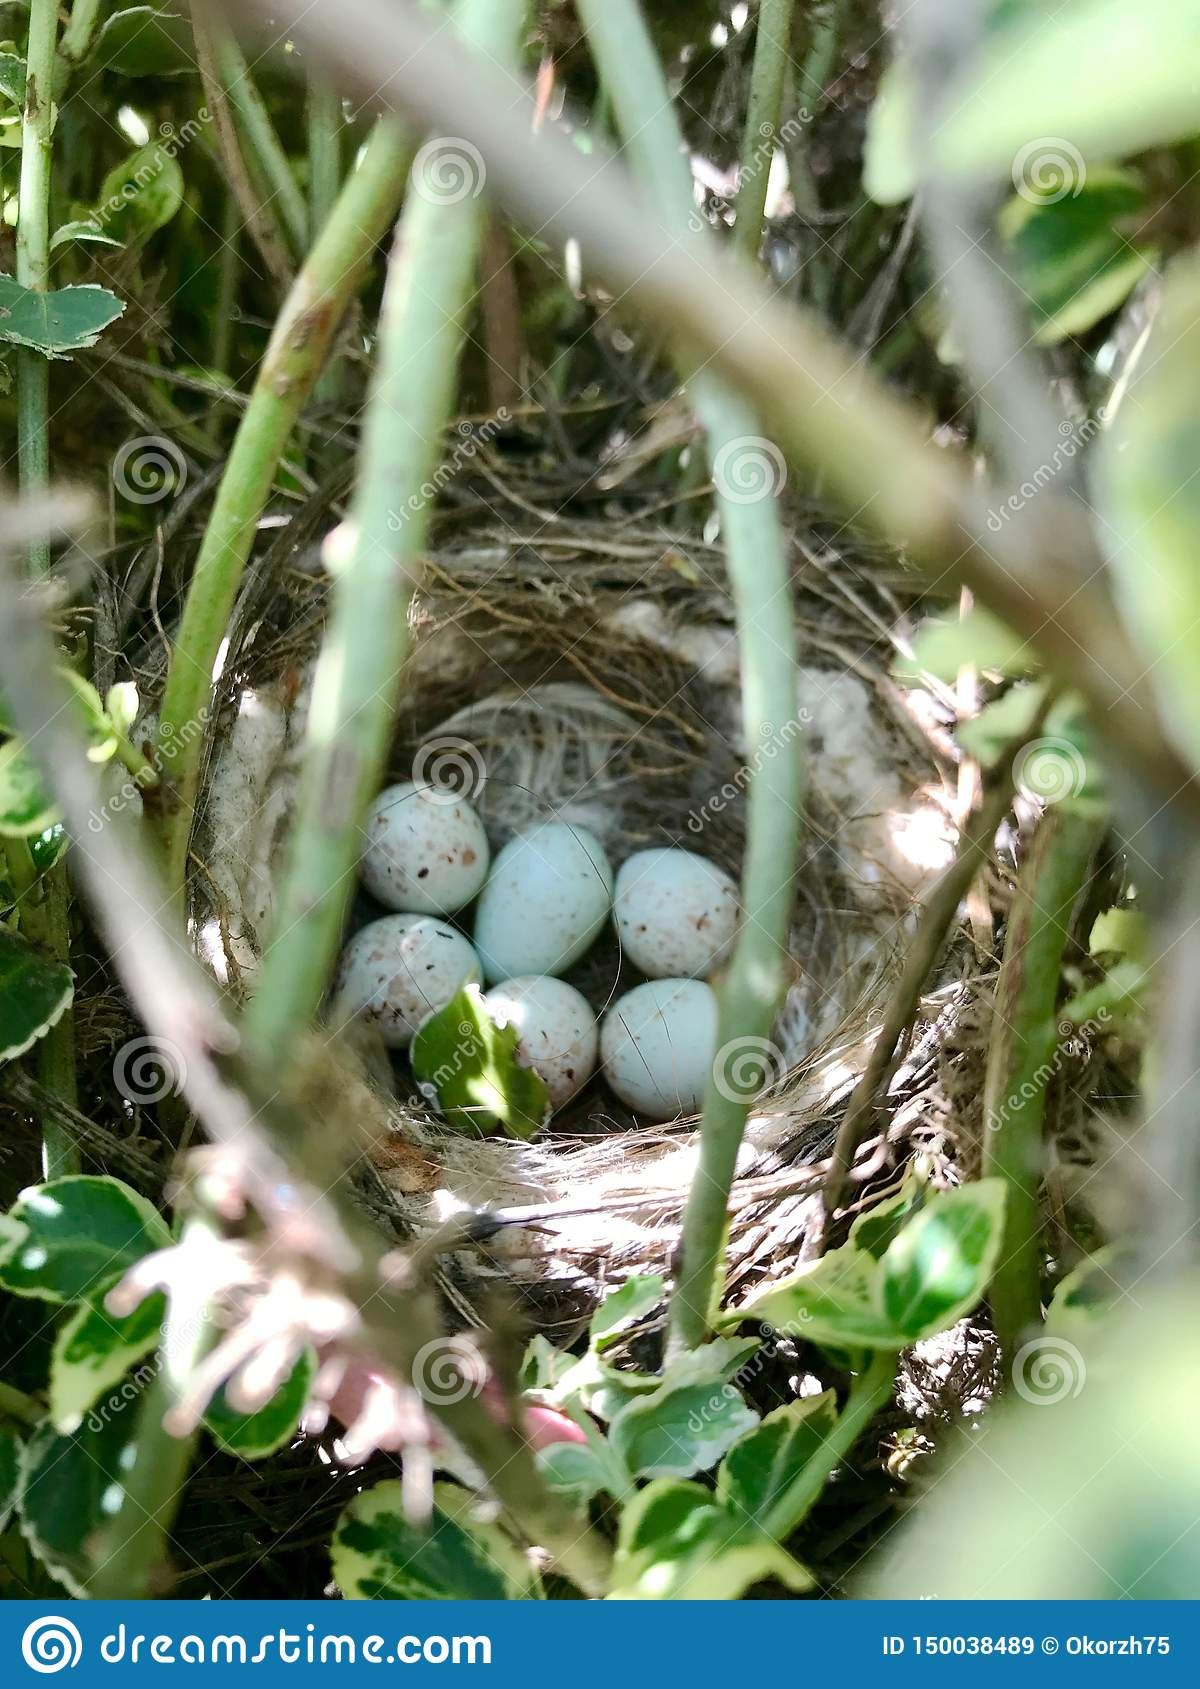 Eggs from oval strong shell waiting their mother in nest